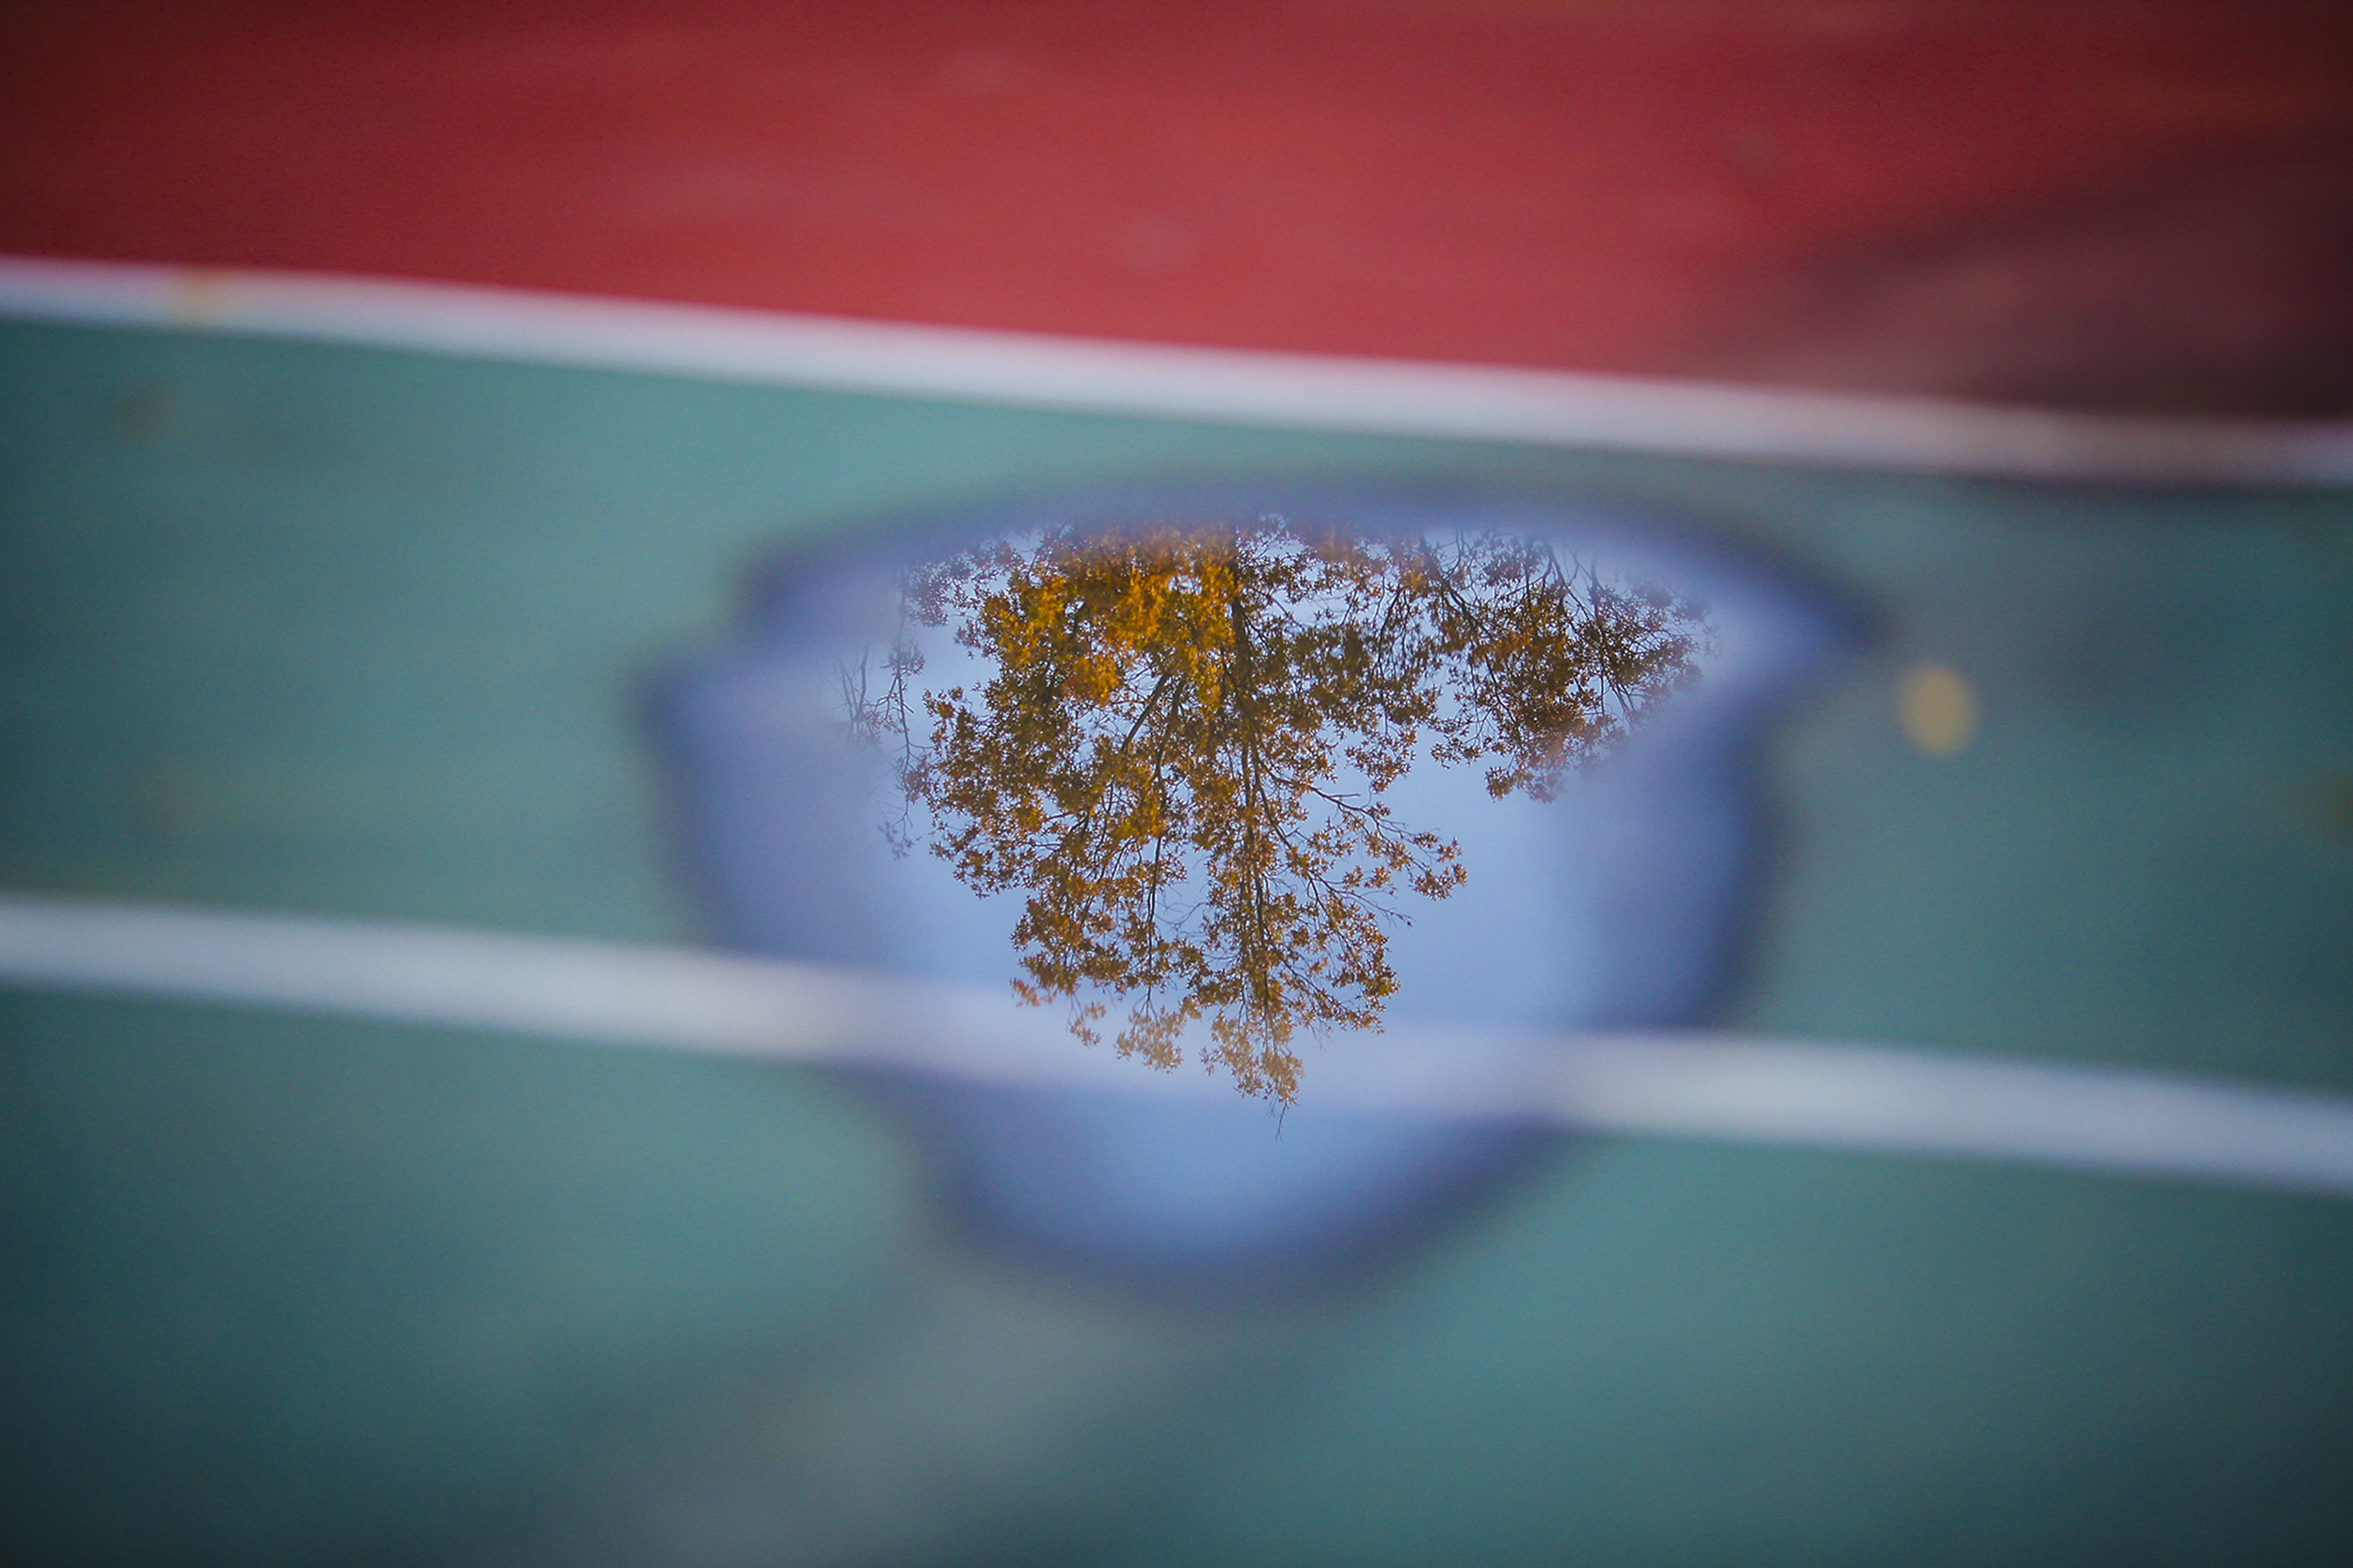 Fall colors show on a tree reflected in a puddle on a basketball court at Hannah Park in Gahanna, Ohio on Sunday, Nov. 03, 2013.